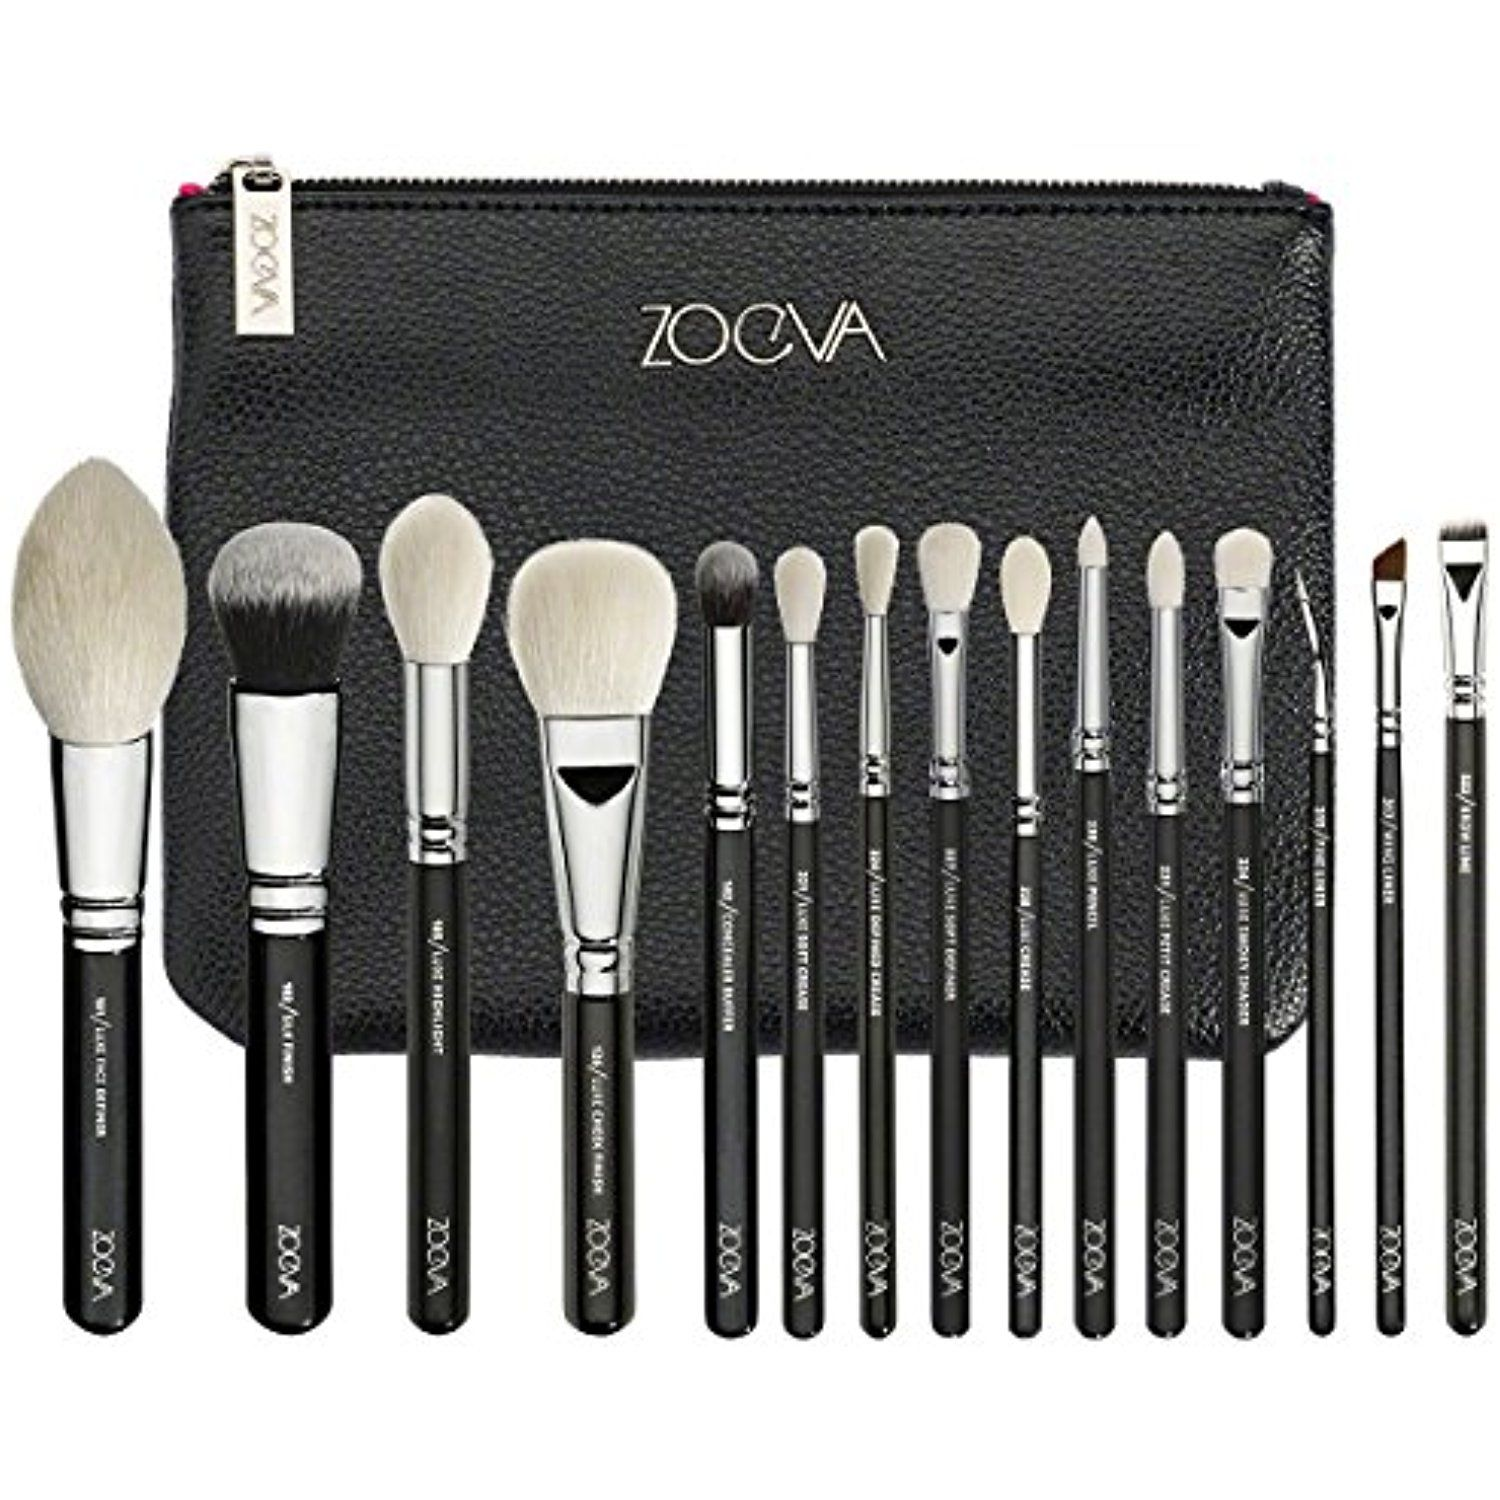 ZOEVA LUXE COMPLETE 15 PENNELLI MAKEUP BRUSHES